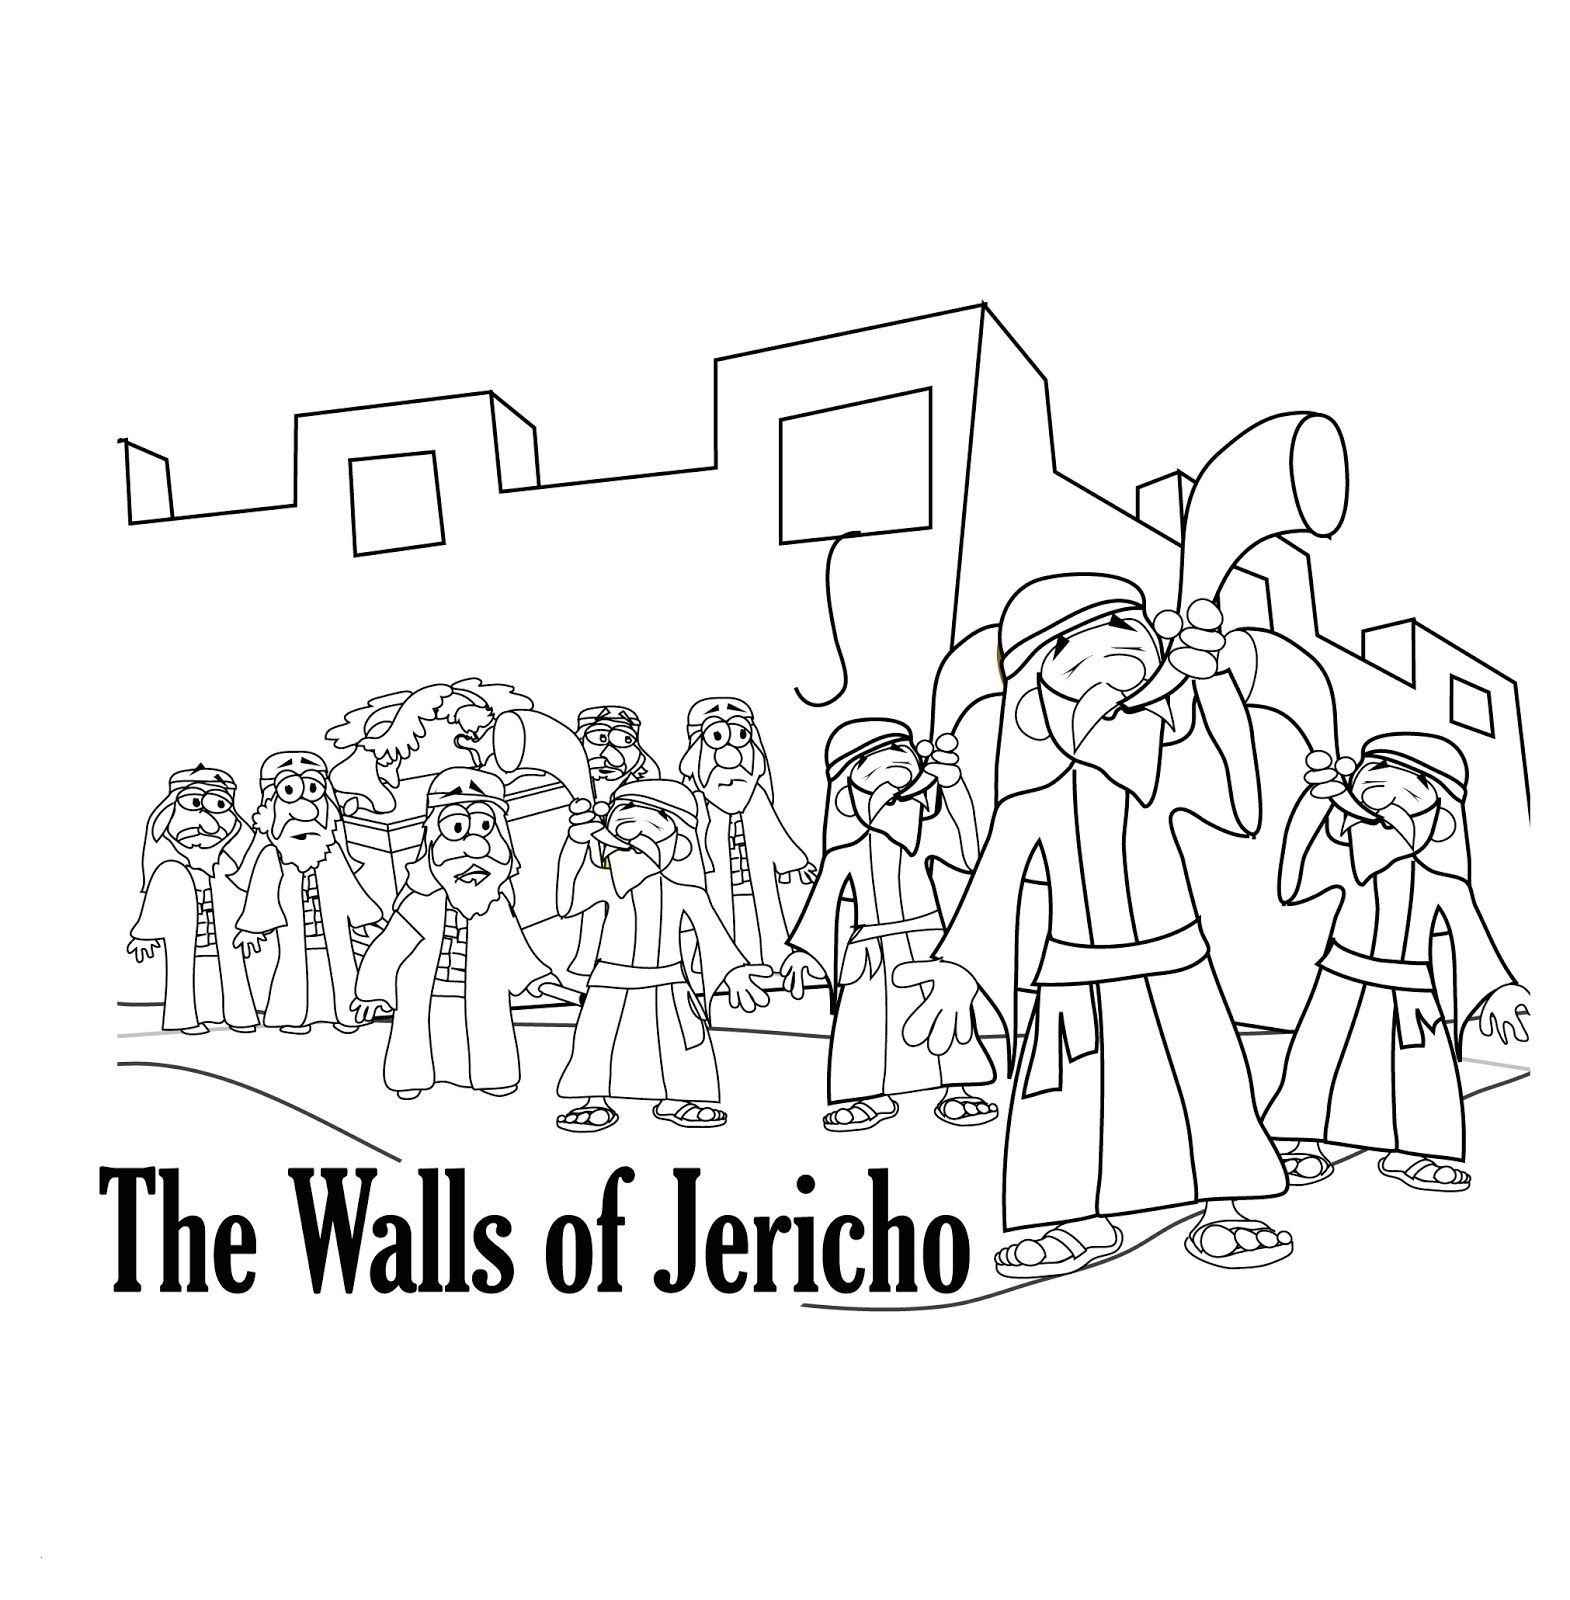 Joshua Fought The Battle Of Jericho Coloring Page New Joshua Walls Of Jericho Coloring Pages Qulu